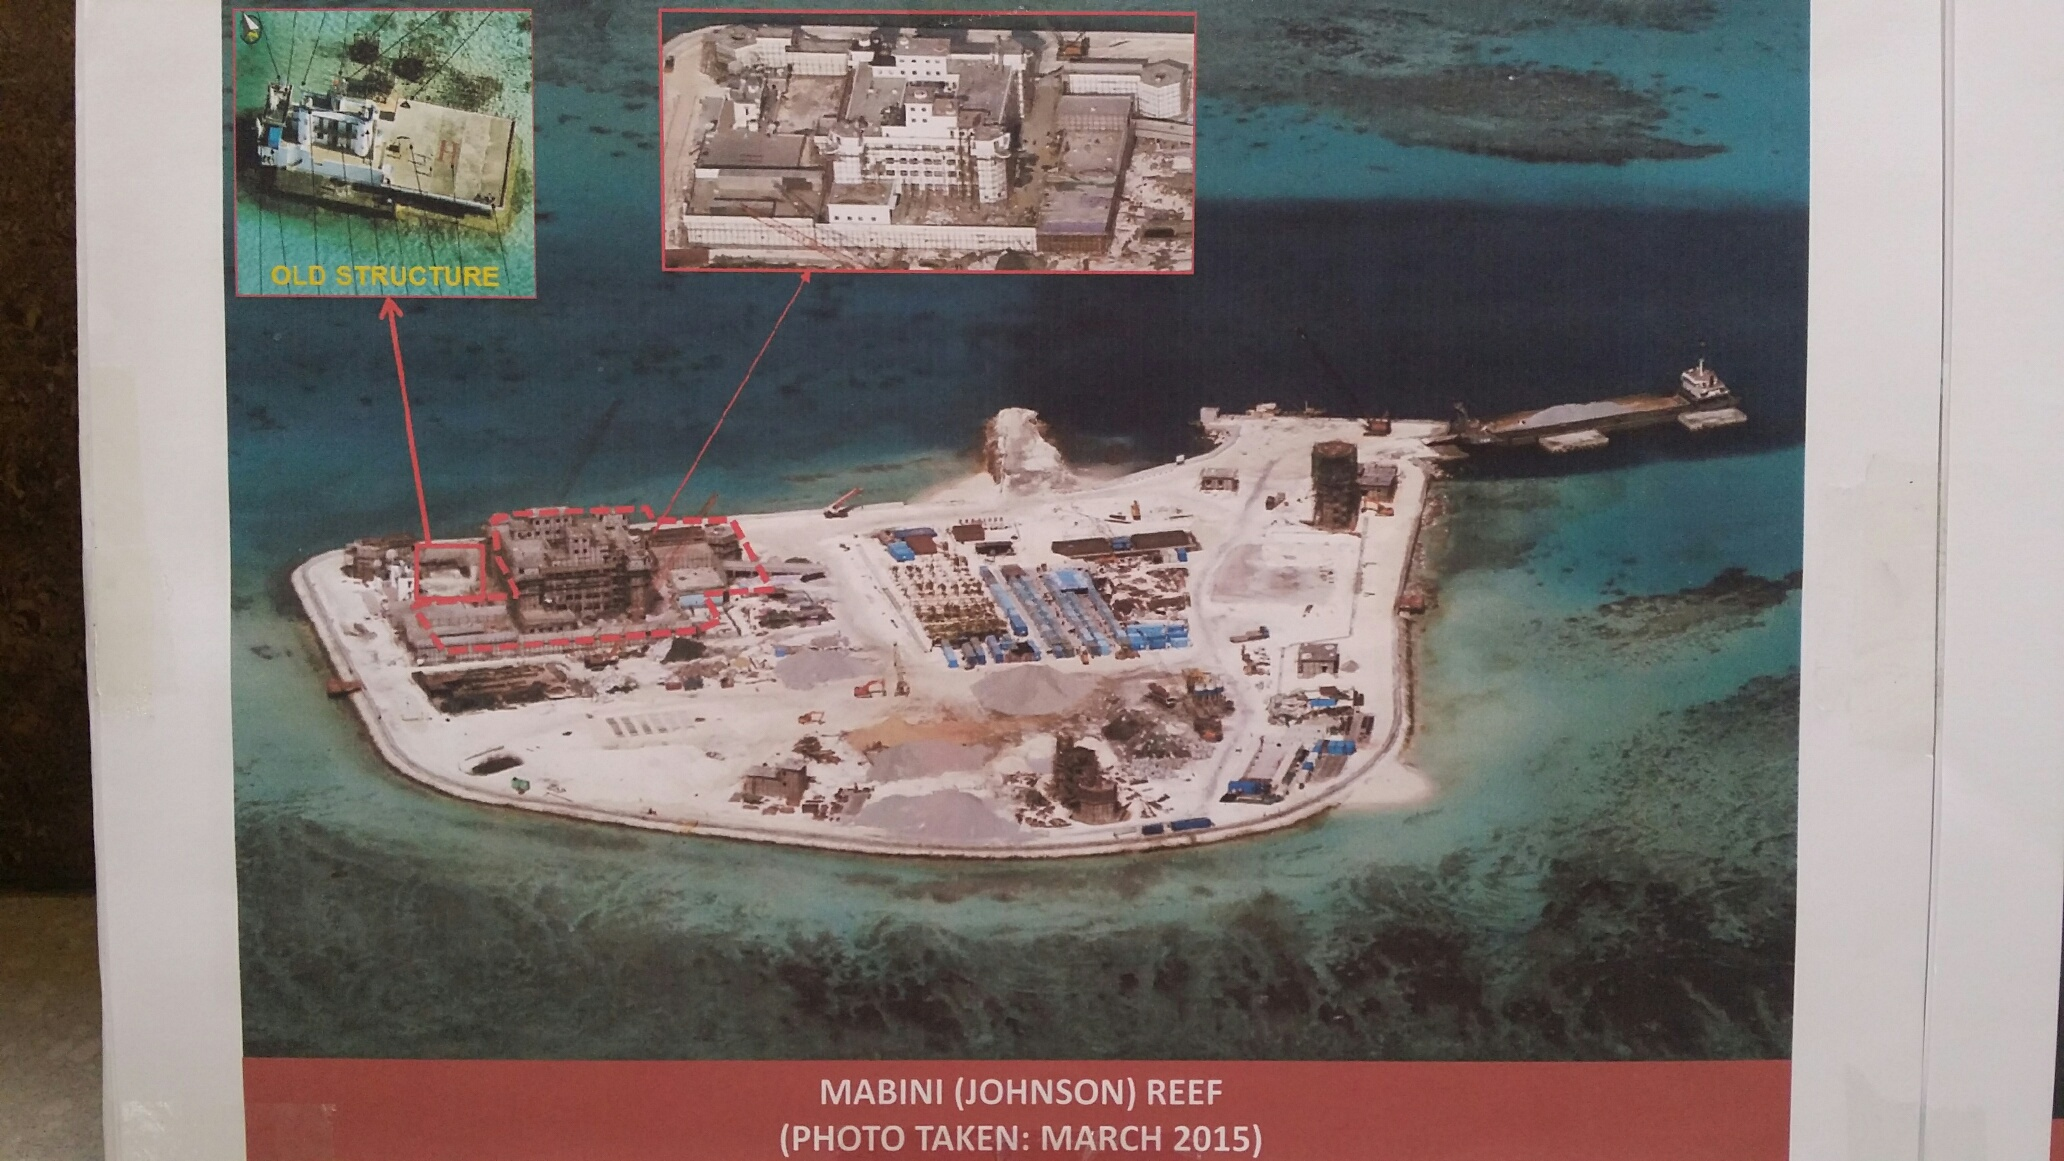 Philippine military's images of China's reclamation in the Spratlys, Mabini (Johnson) Reef, March, 2015. (Armed Forces of the Philippines)